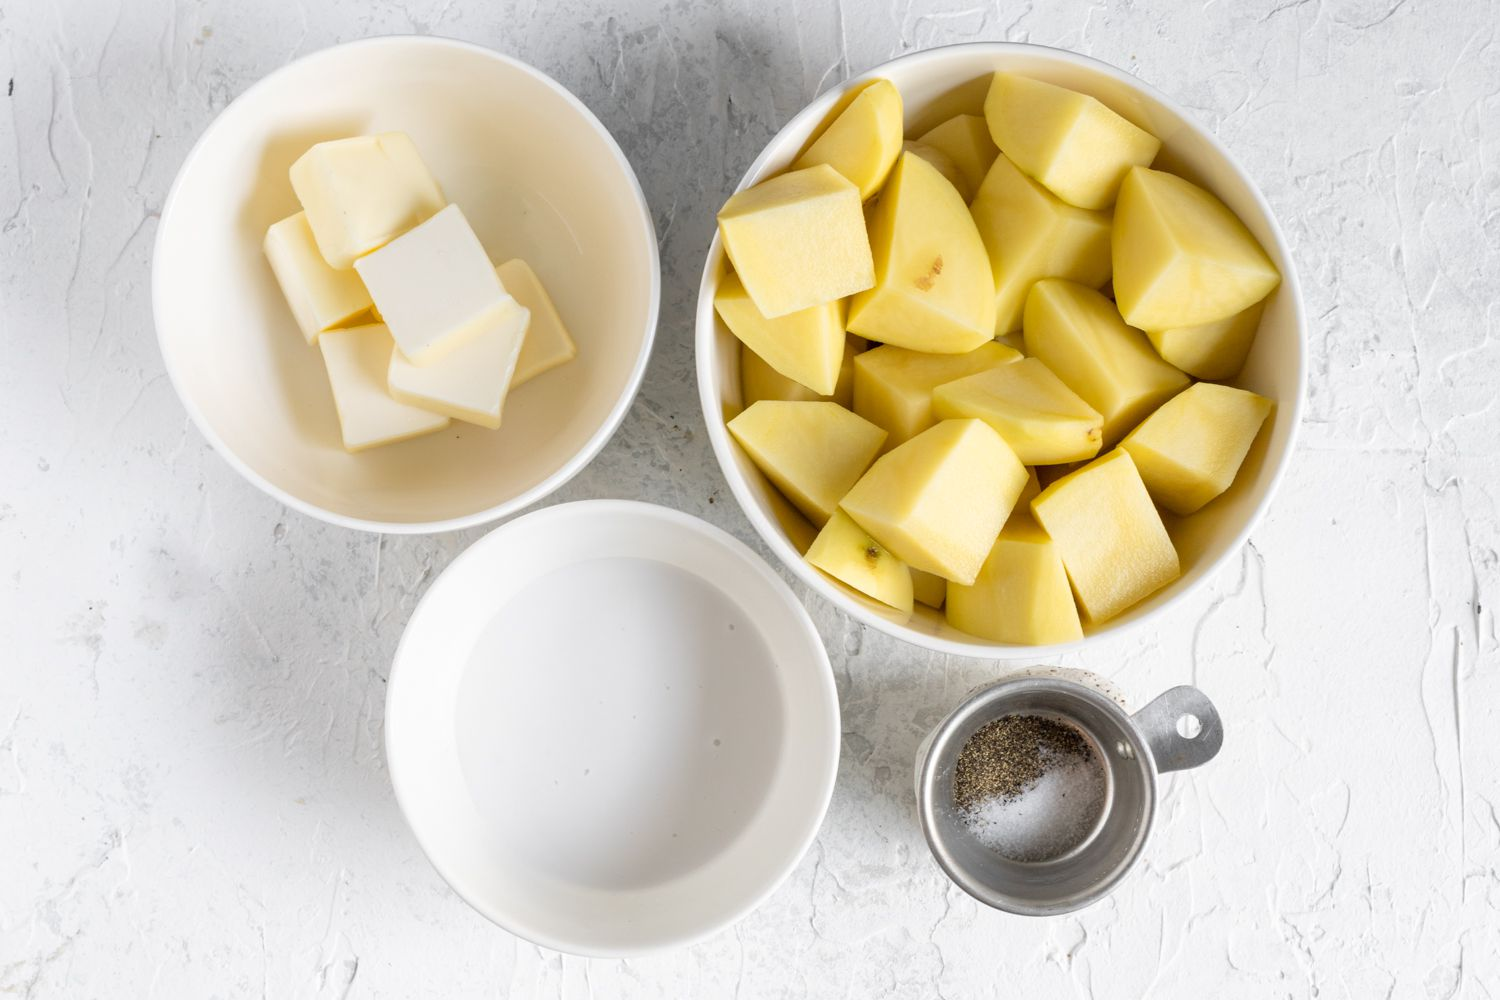 Ingredients for creamy mashed potatoes